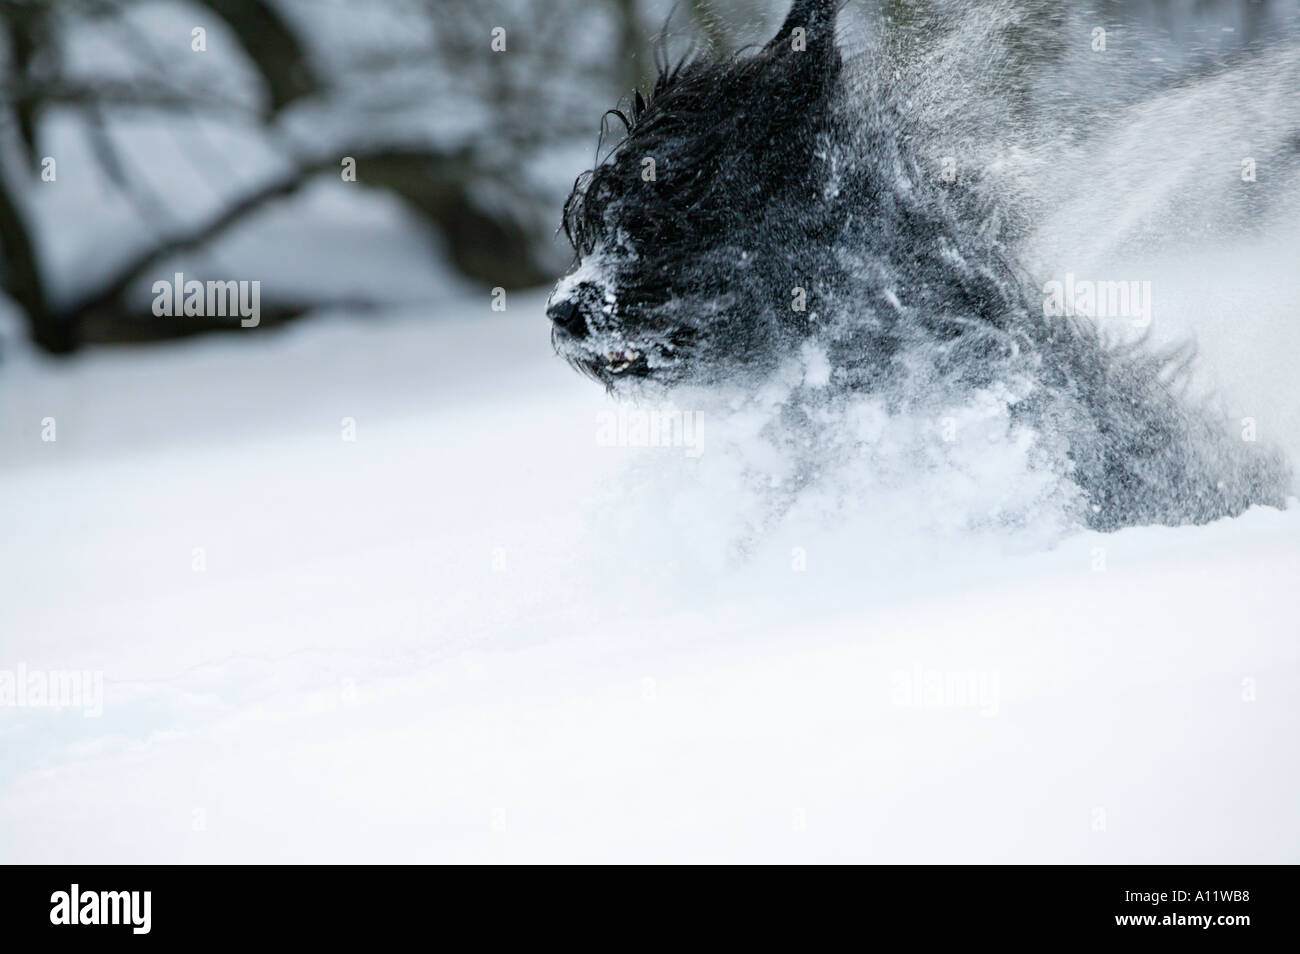 briard black dog running and jumping in very deep snow blurred action released Stock Photo